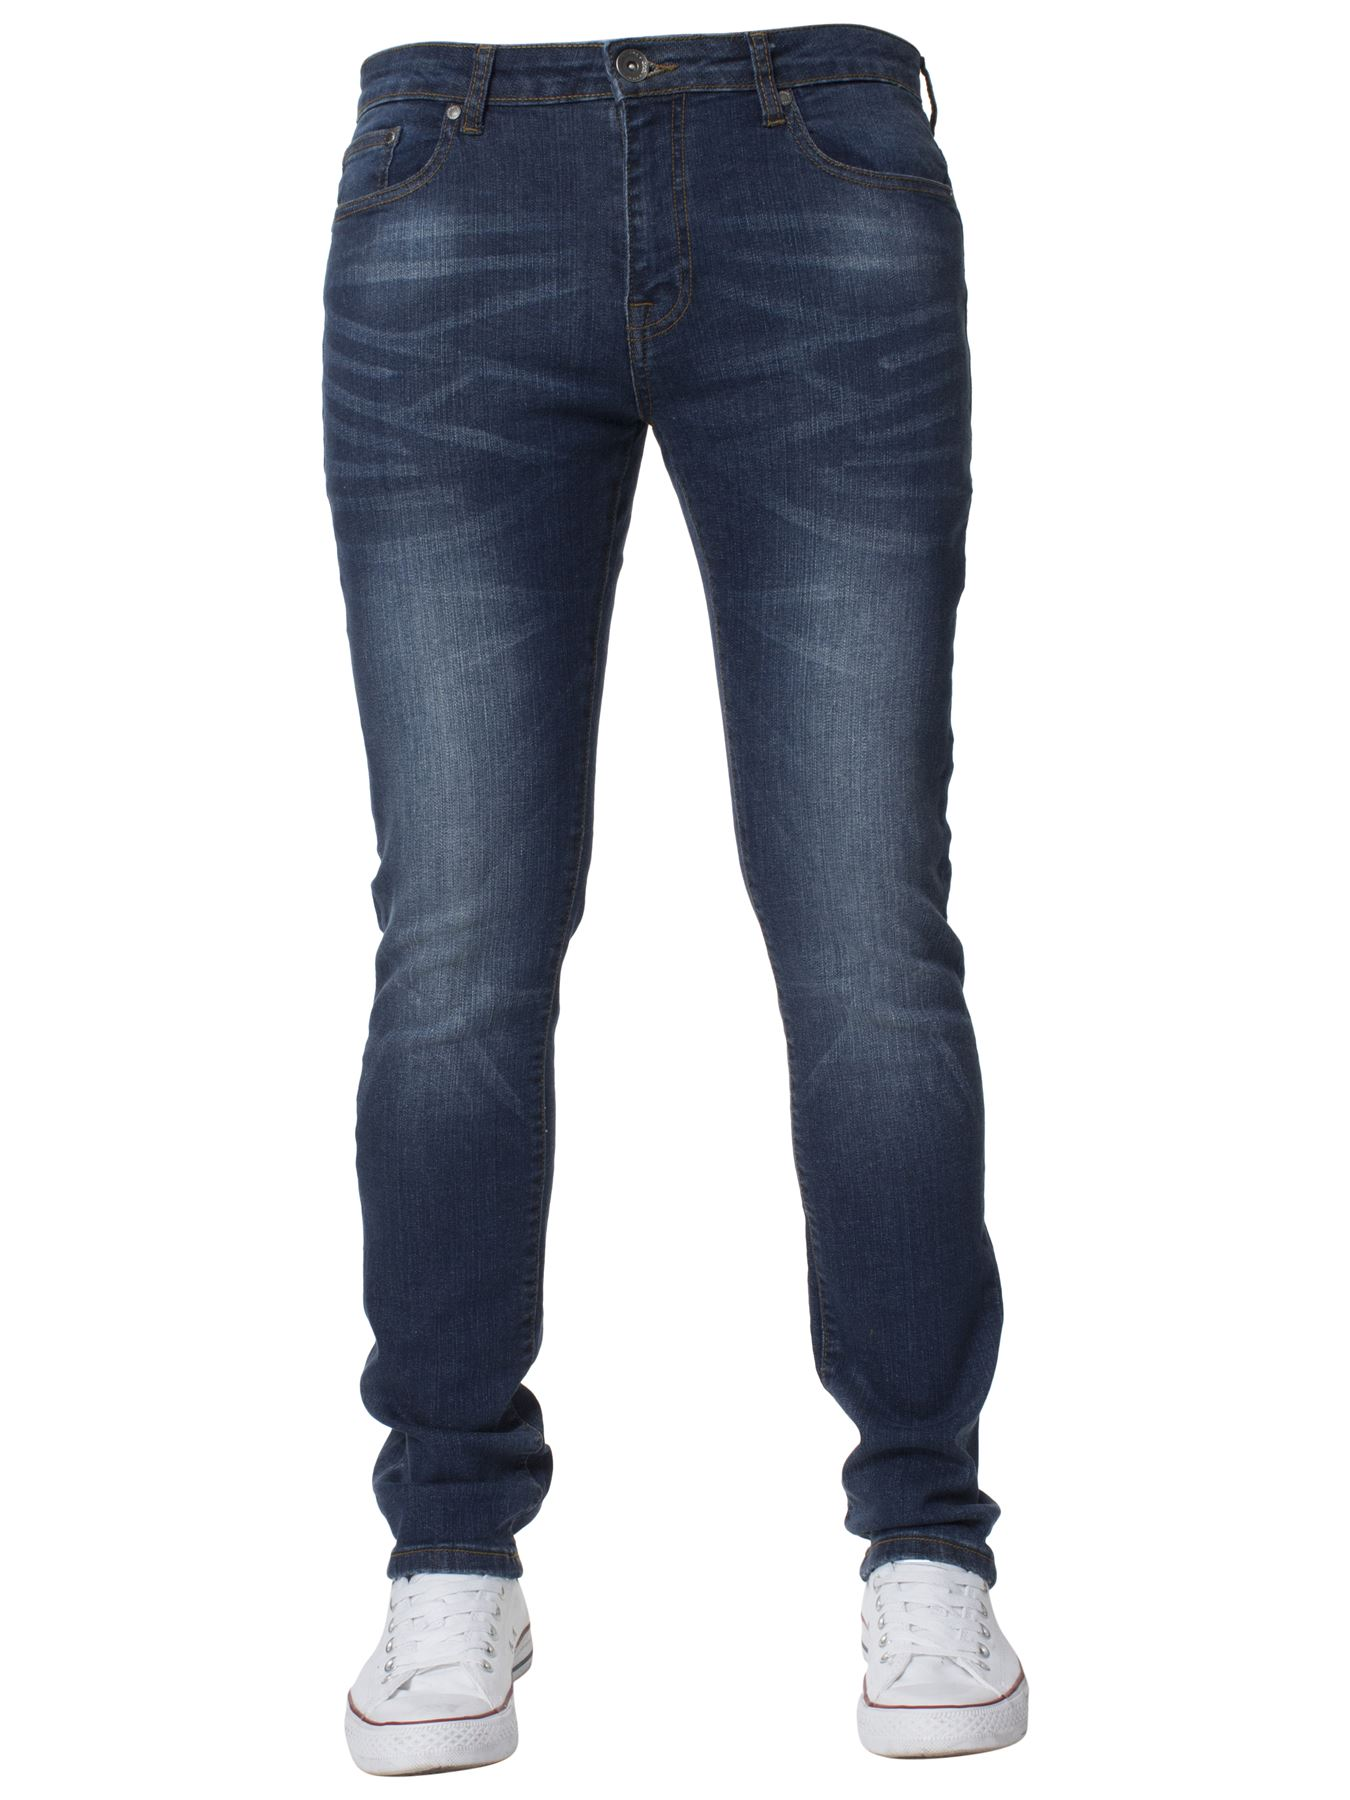 Kruze-Mens-Skinny-Stretch-Flex-Denim-Jeans-Slim-Fit-Trouser-Pants-Big-King-Sizes thumbnail 10